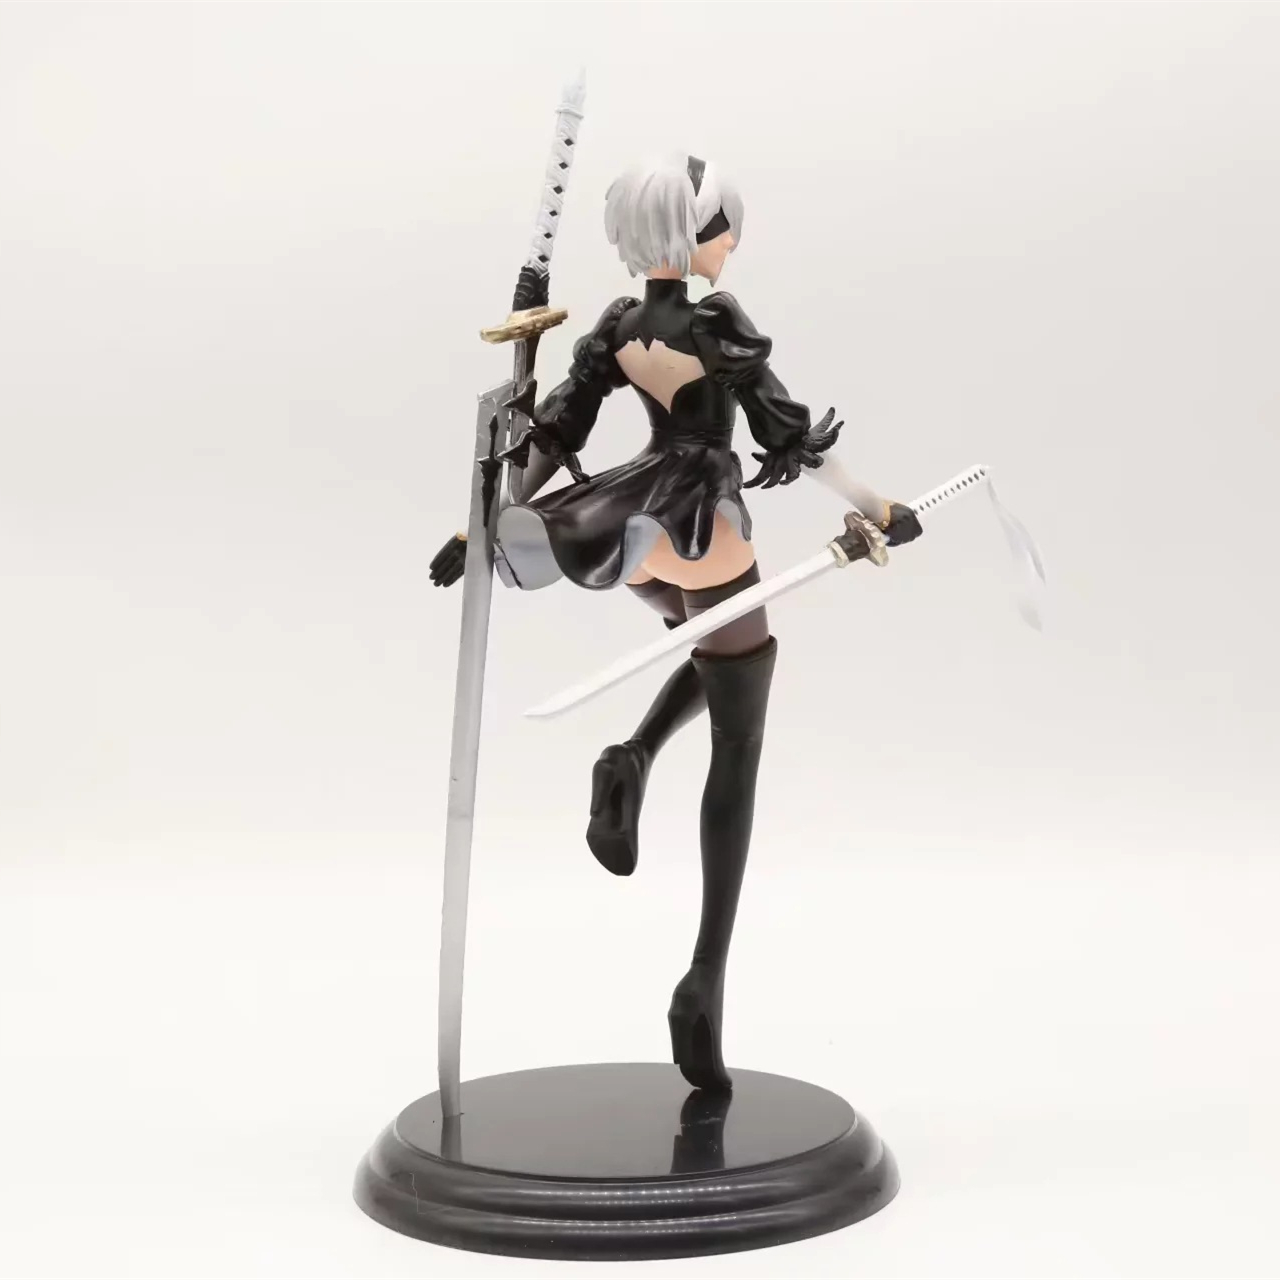 PS4 NieR:Automata 2B 25cm Deluxe Ver Action Figure Figurine Statue Model BOXED